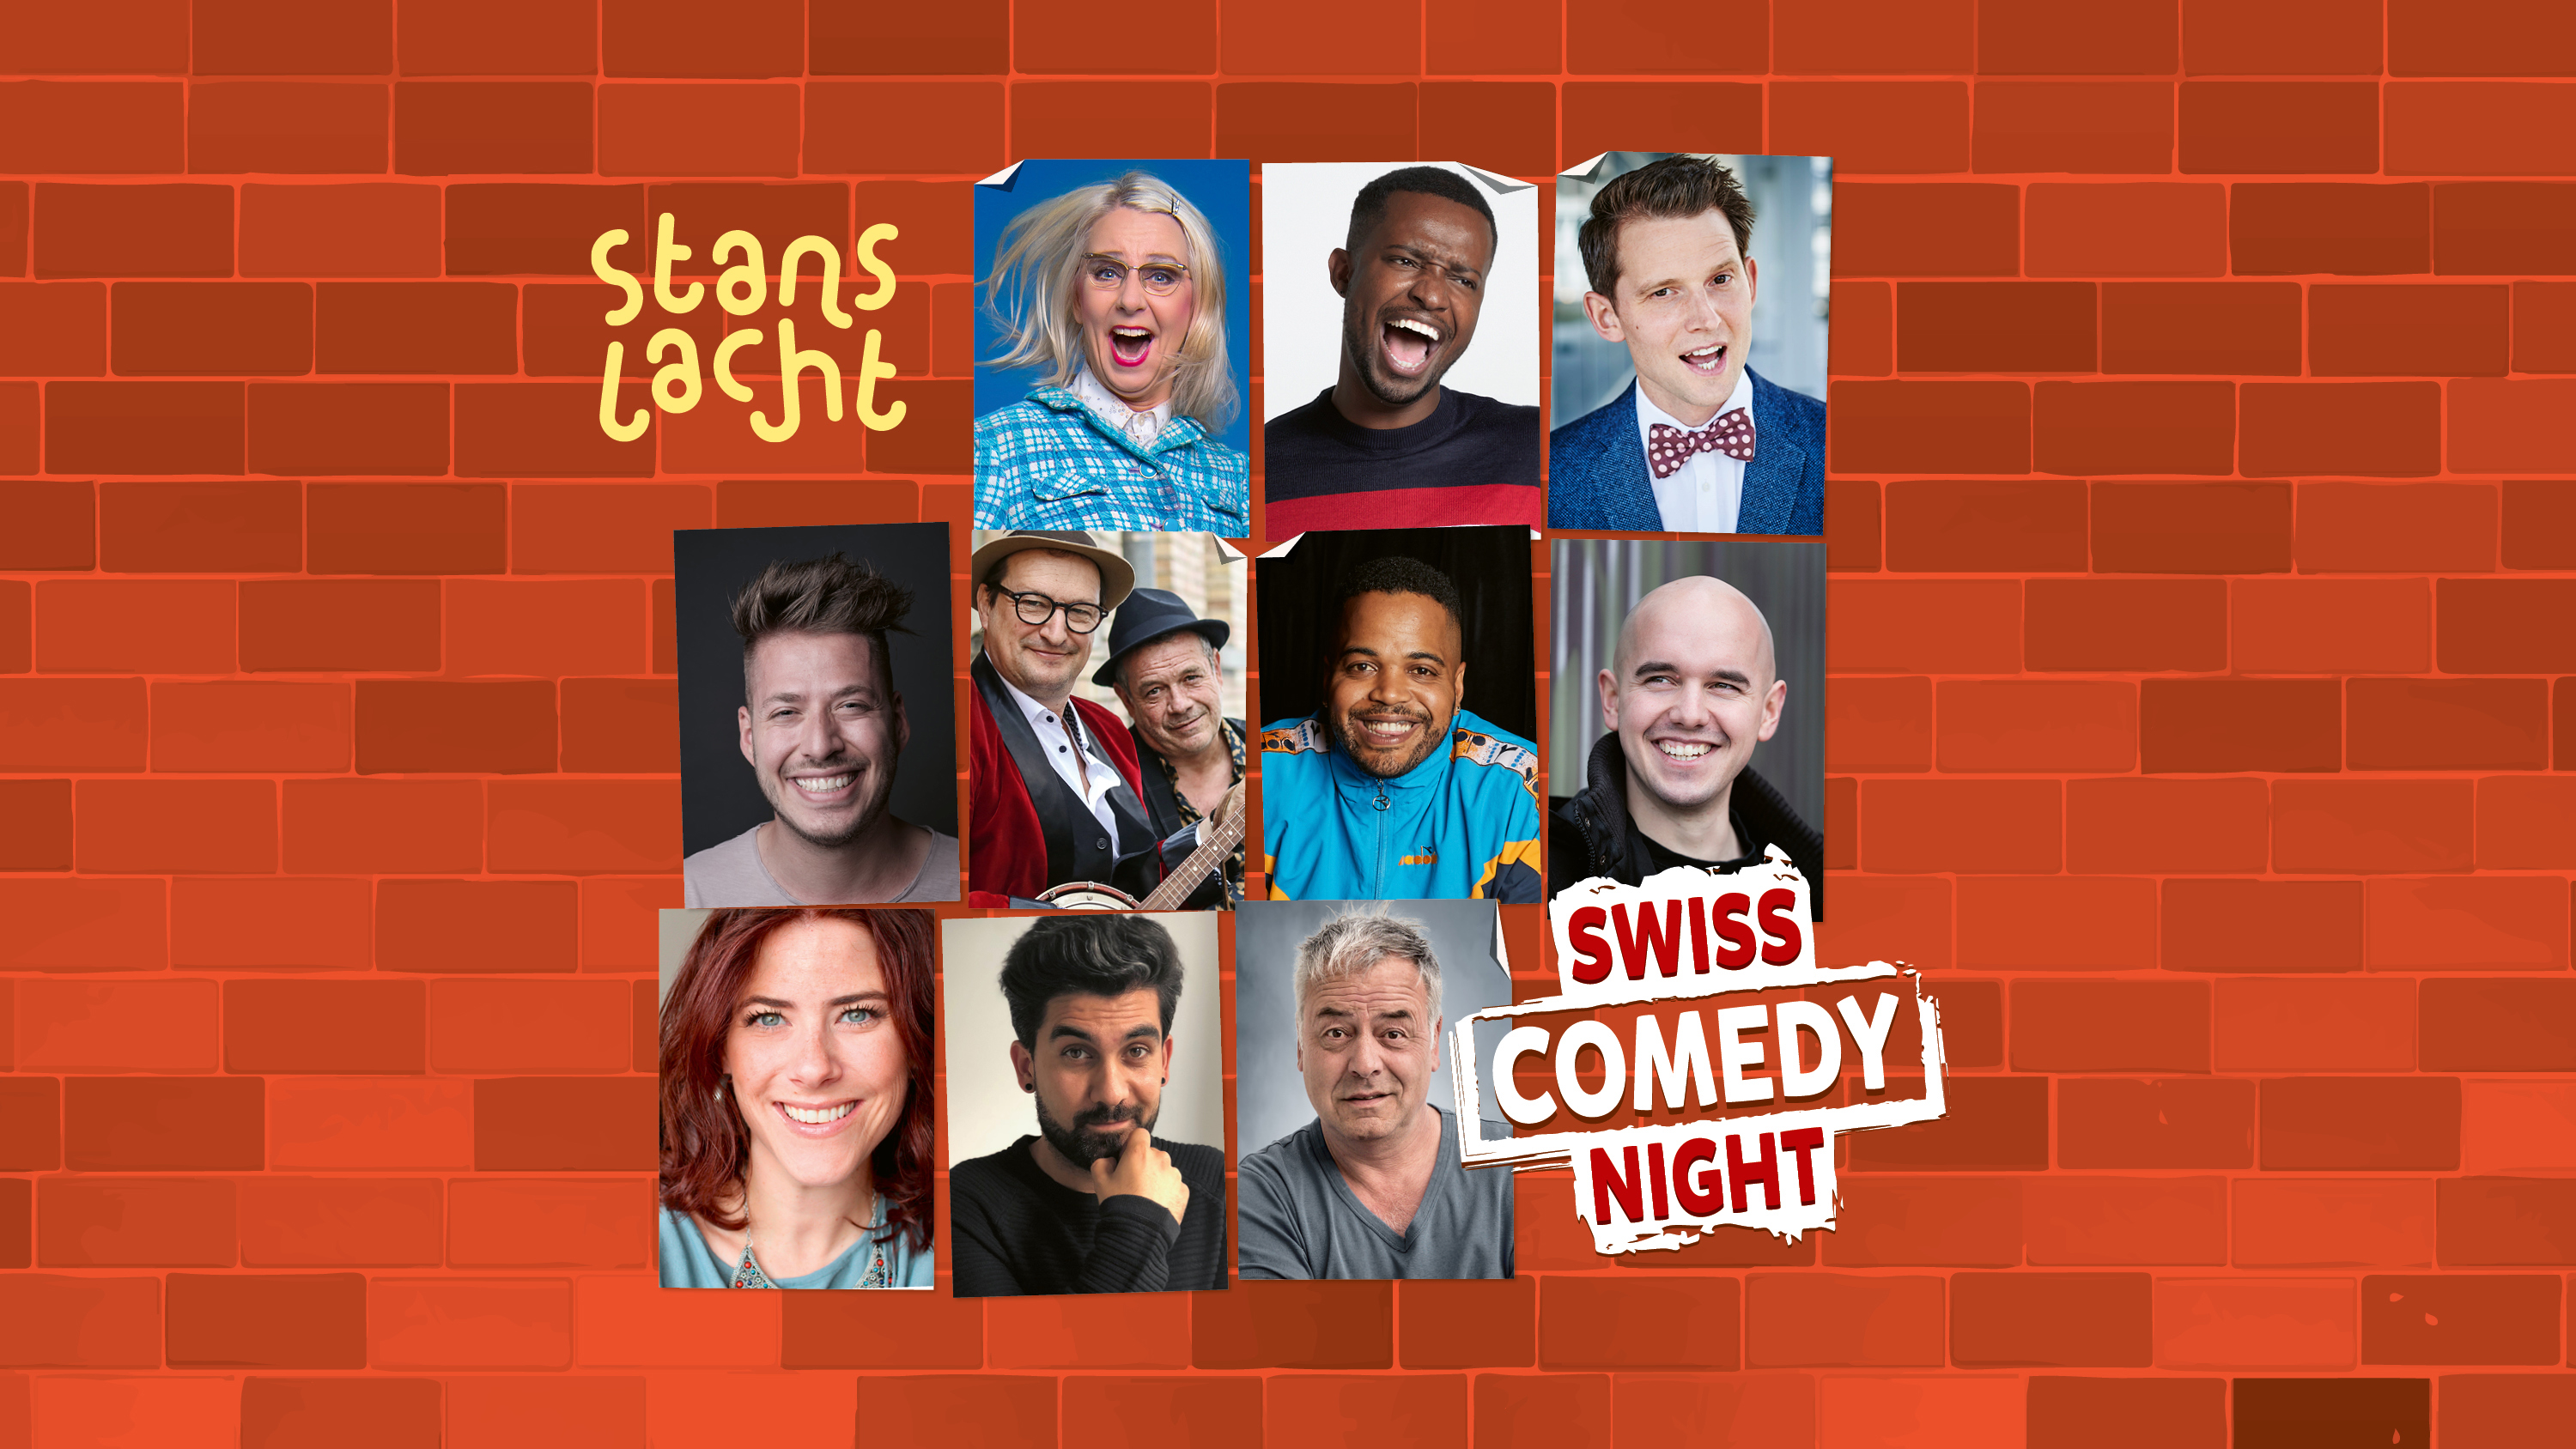 Stans Lacht: Swiss Comedy Night